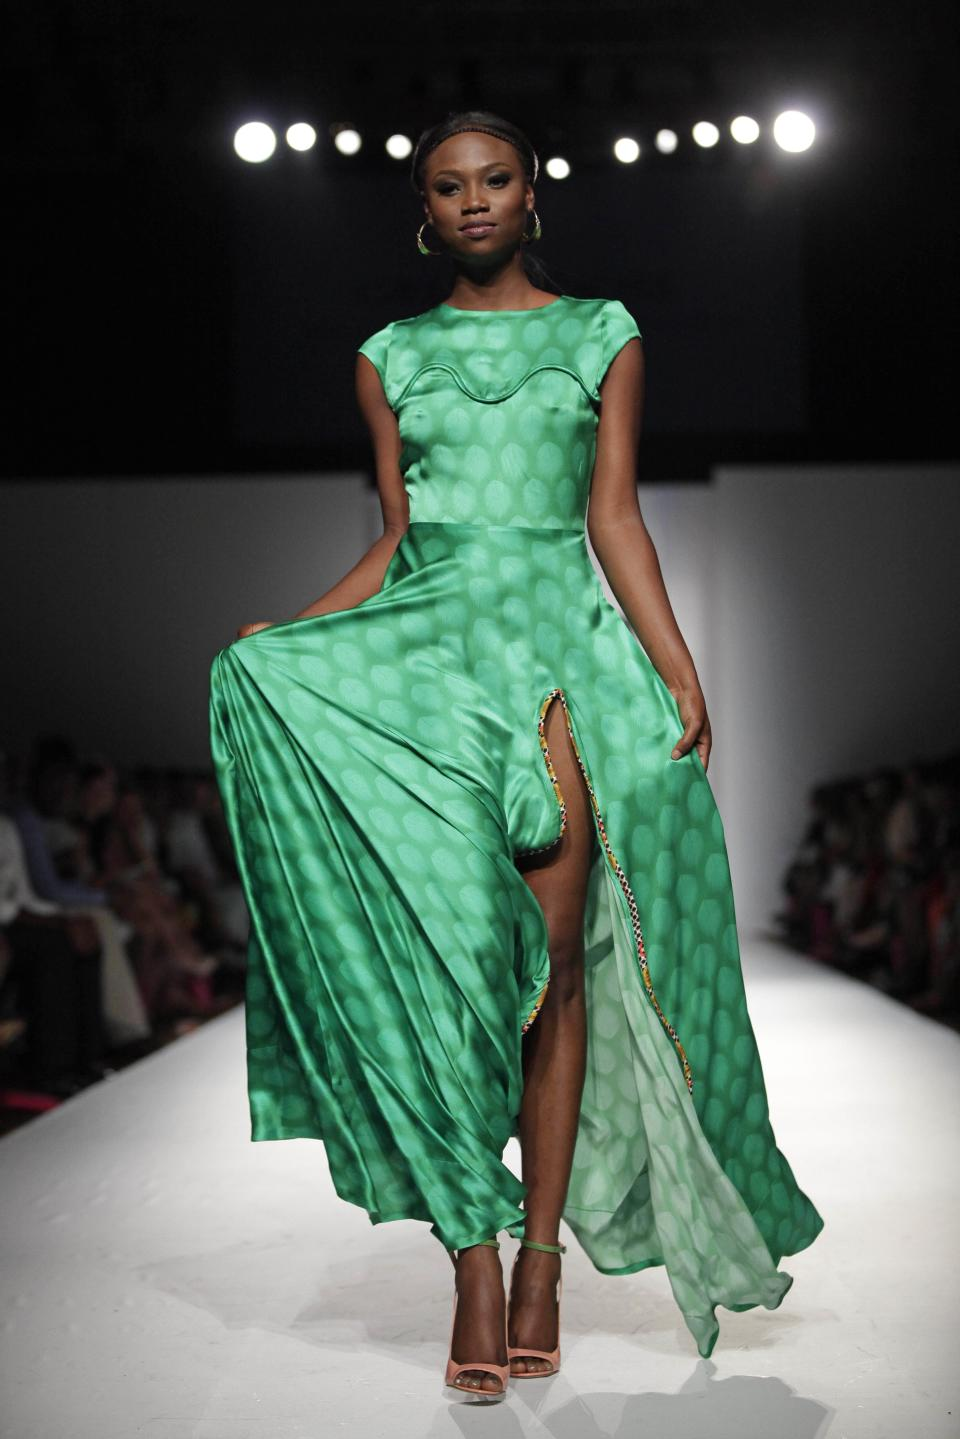 A model displays a creation designed by Jewel by Lisa during the MTN Fashion and Design Week in Lagos, Nigeria, Saturday, Oct. 27, 2012. (AP Photo/Sunday Alamba)